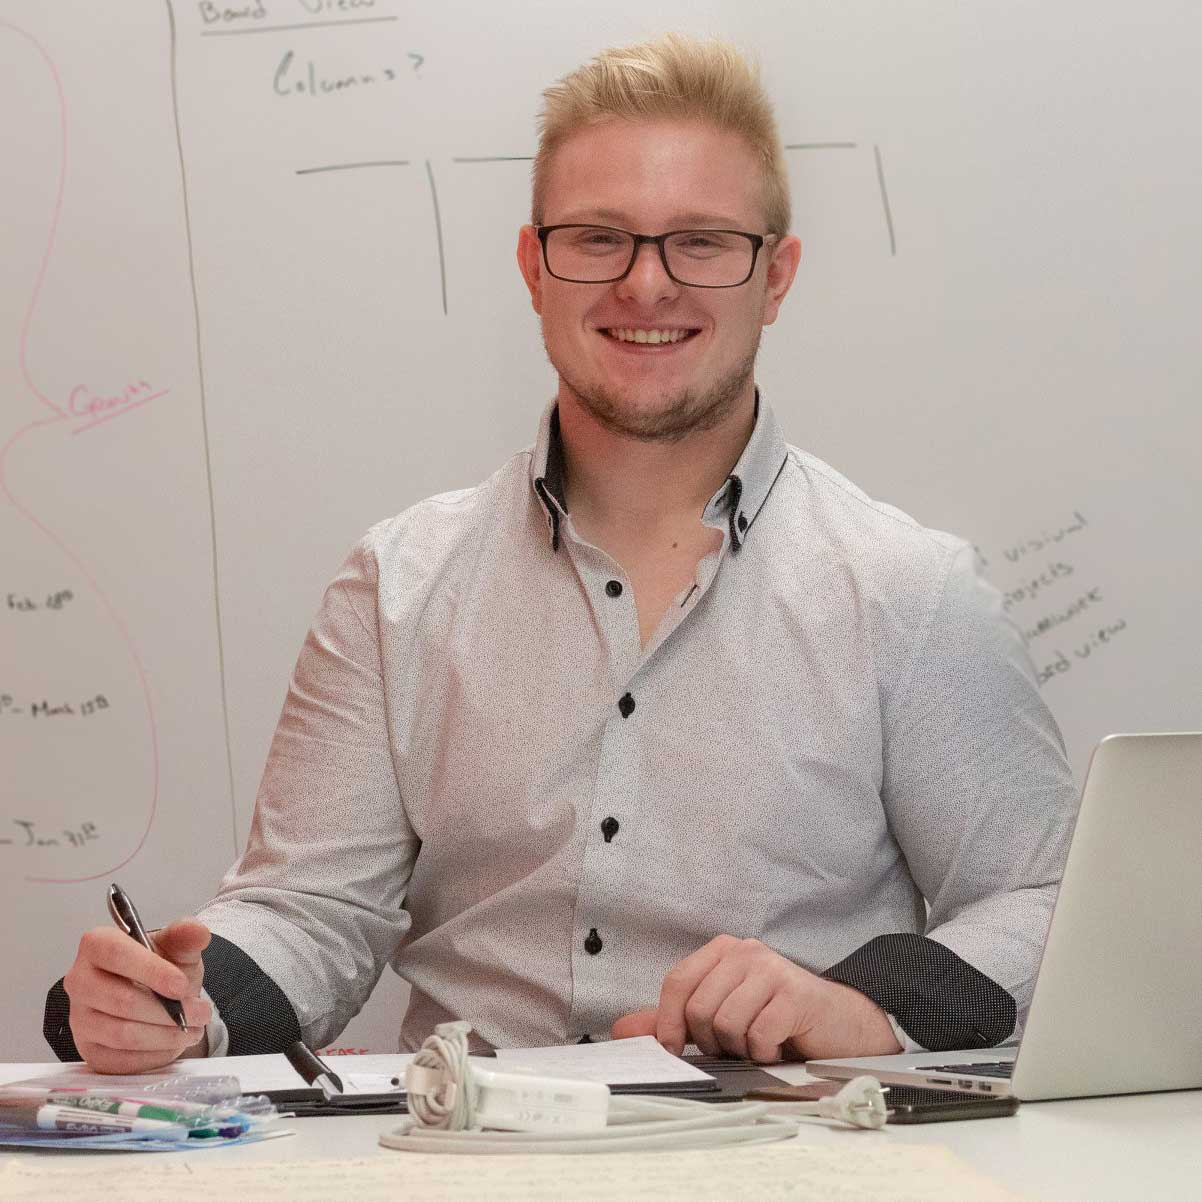 Project Manager, Cody Butler creating wireframes on whiteboard